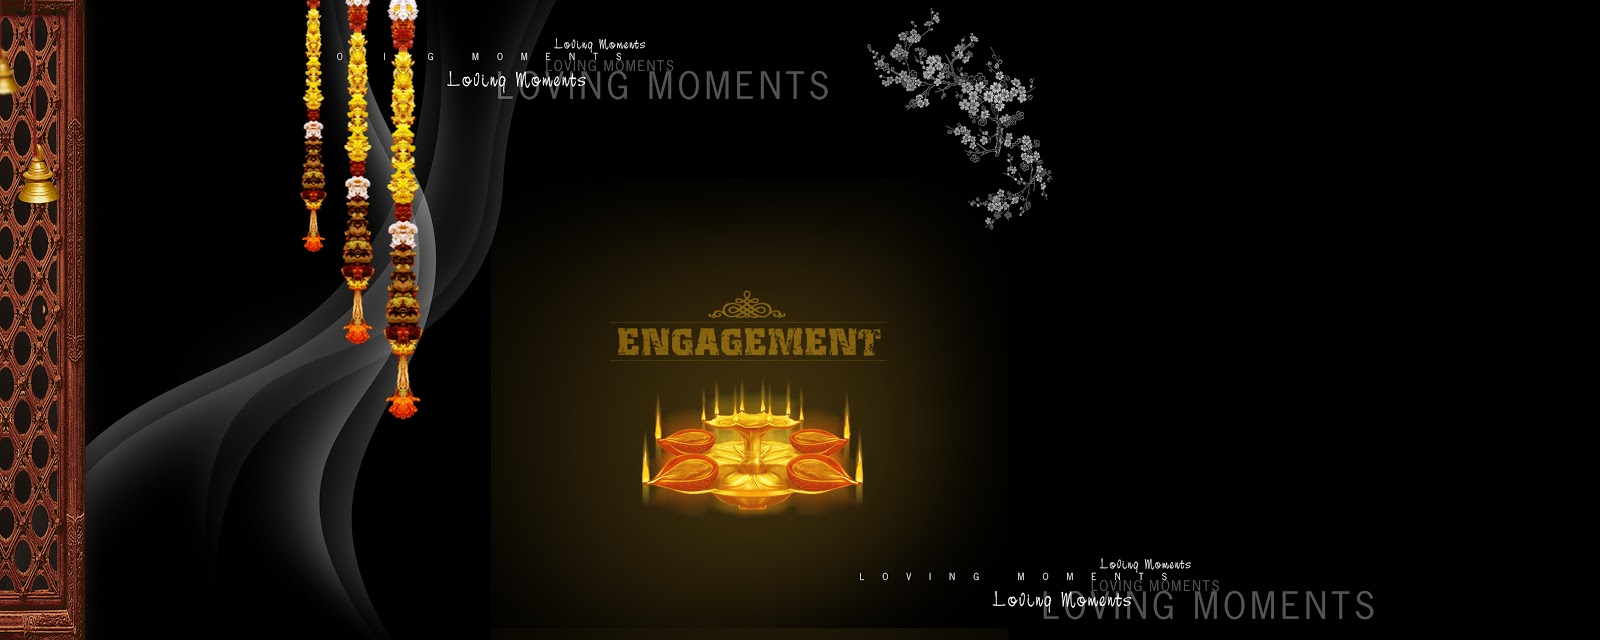 Wedding backgrounds creation for Adobe photoshop psd free downloads